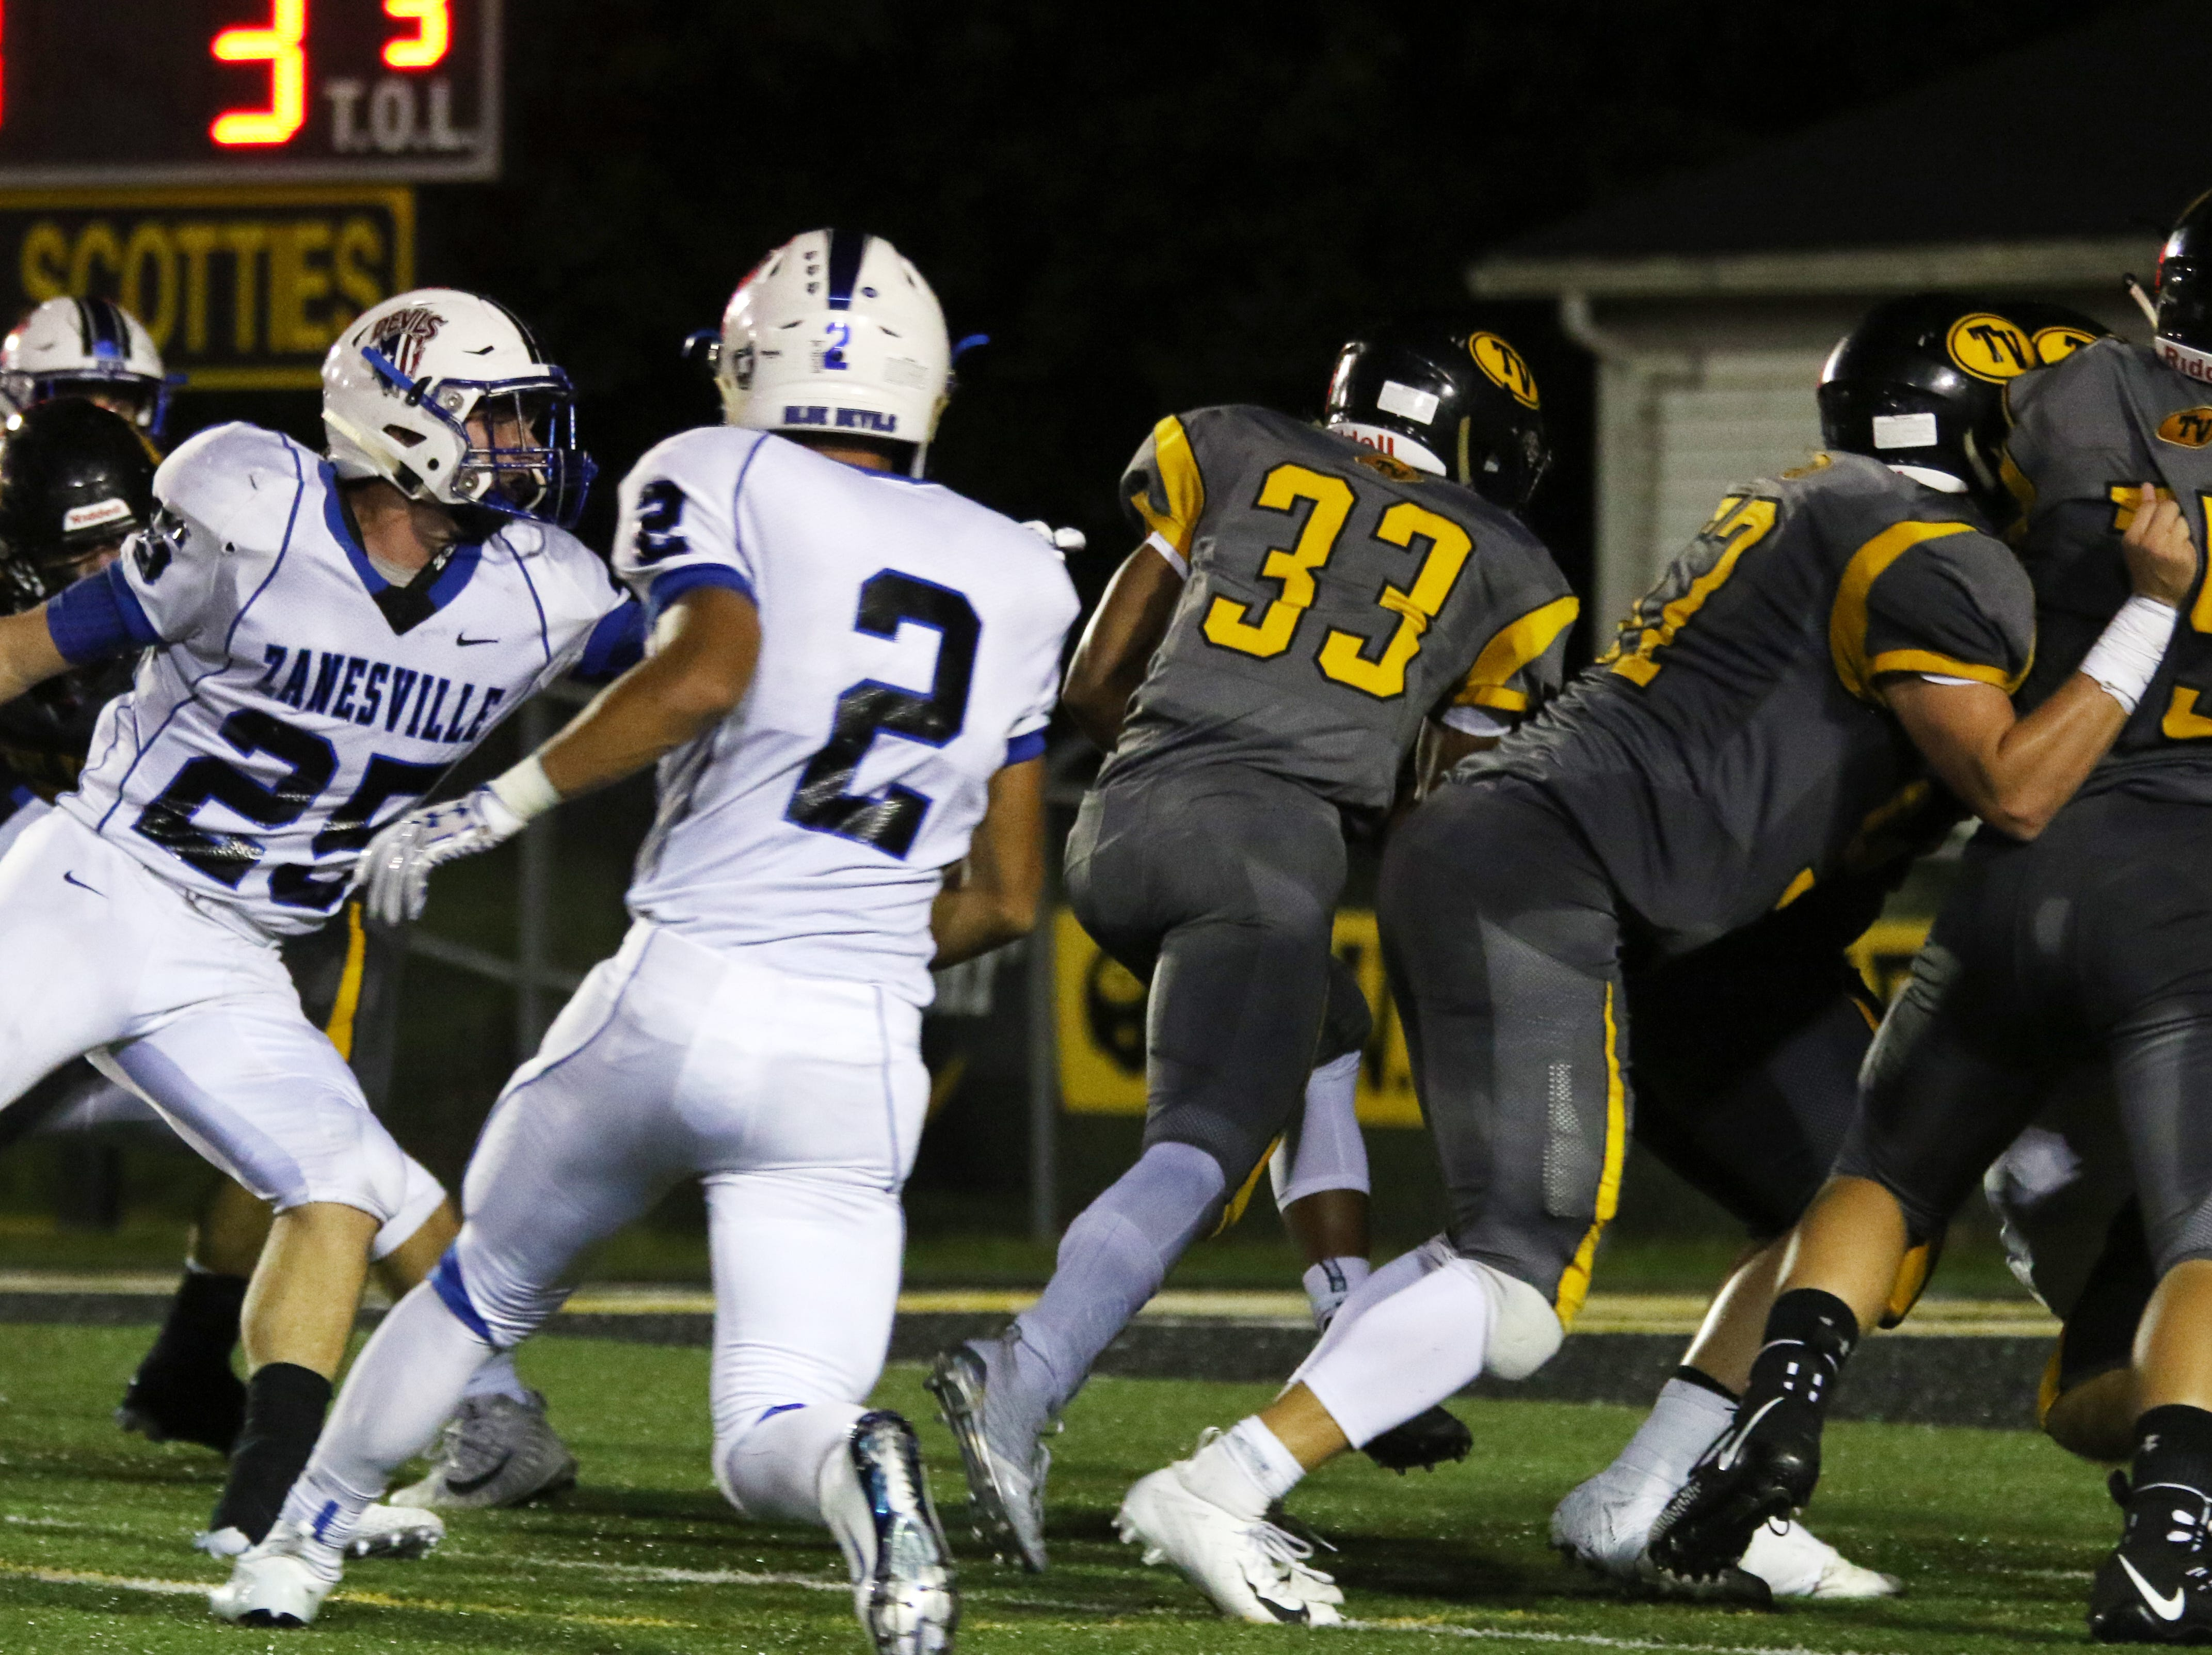 Tri-Valley's Jordan Pantaleo heads toward the endzone against Zanesville.